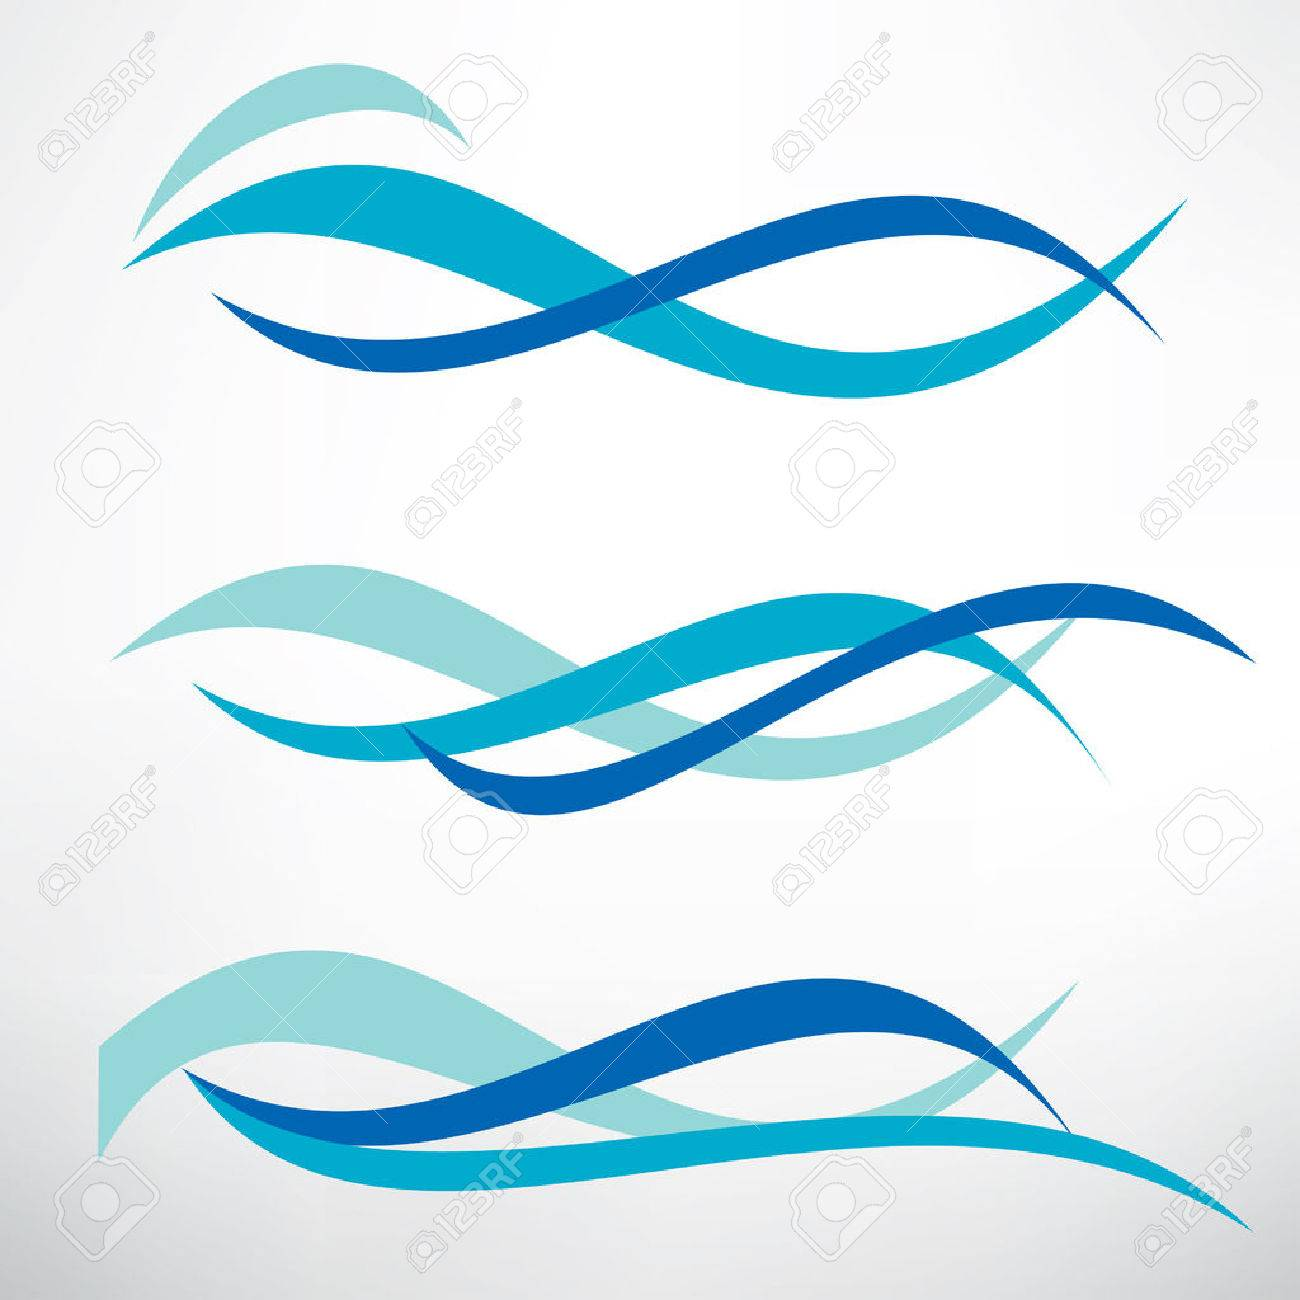 111 953 wave vector stock illustrations cliparts and royalty free rh 123rf com wave vector free wave vector lines